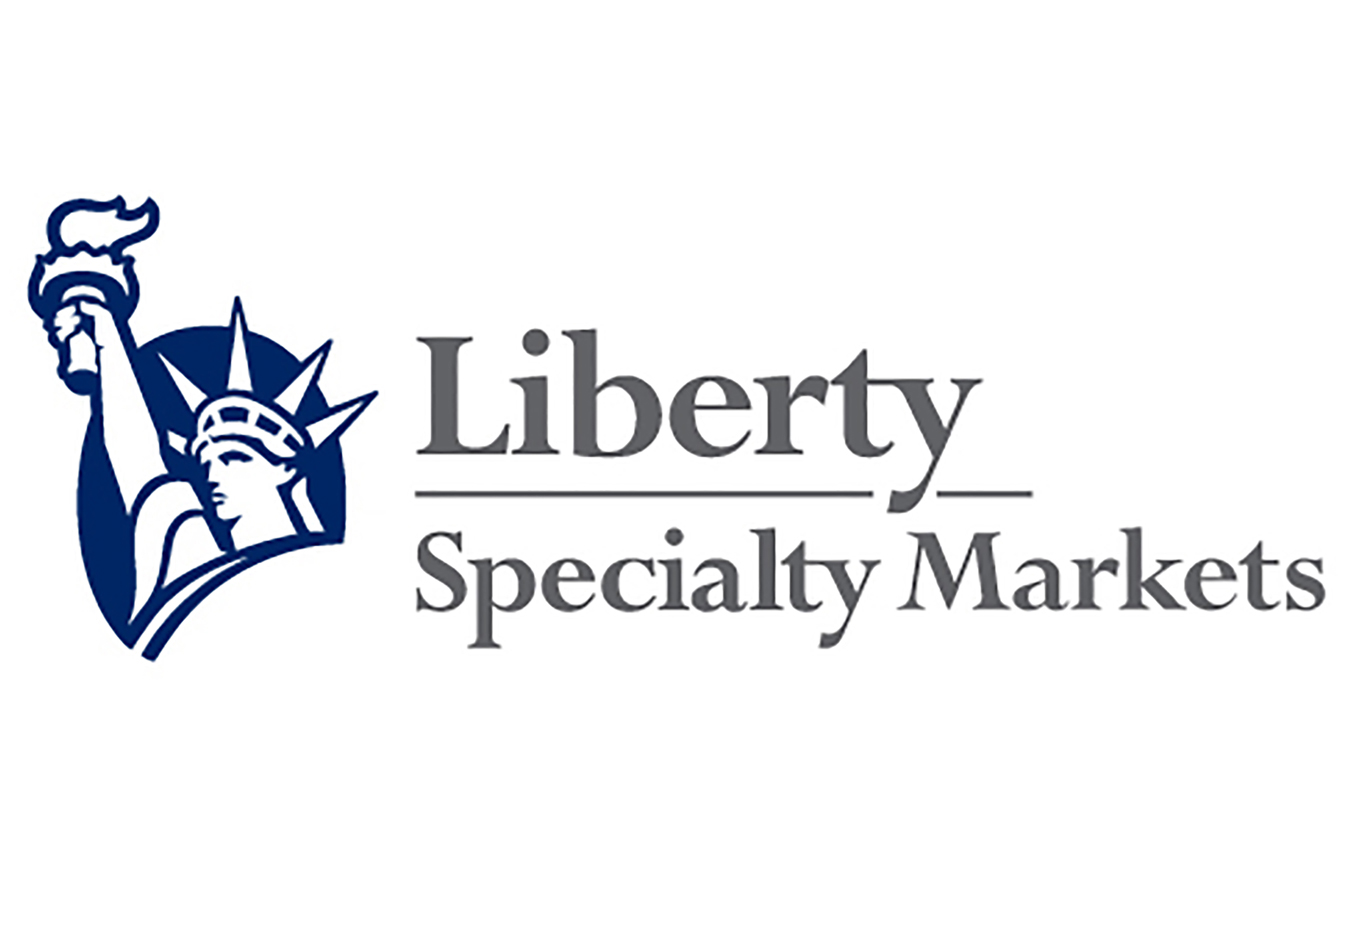 Specialty markets